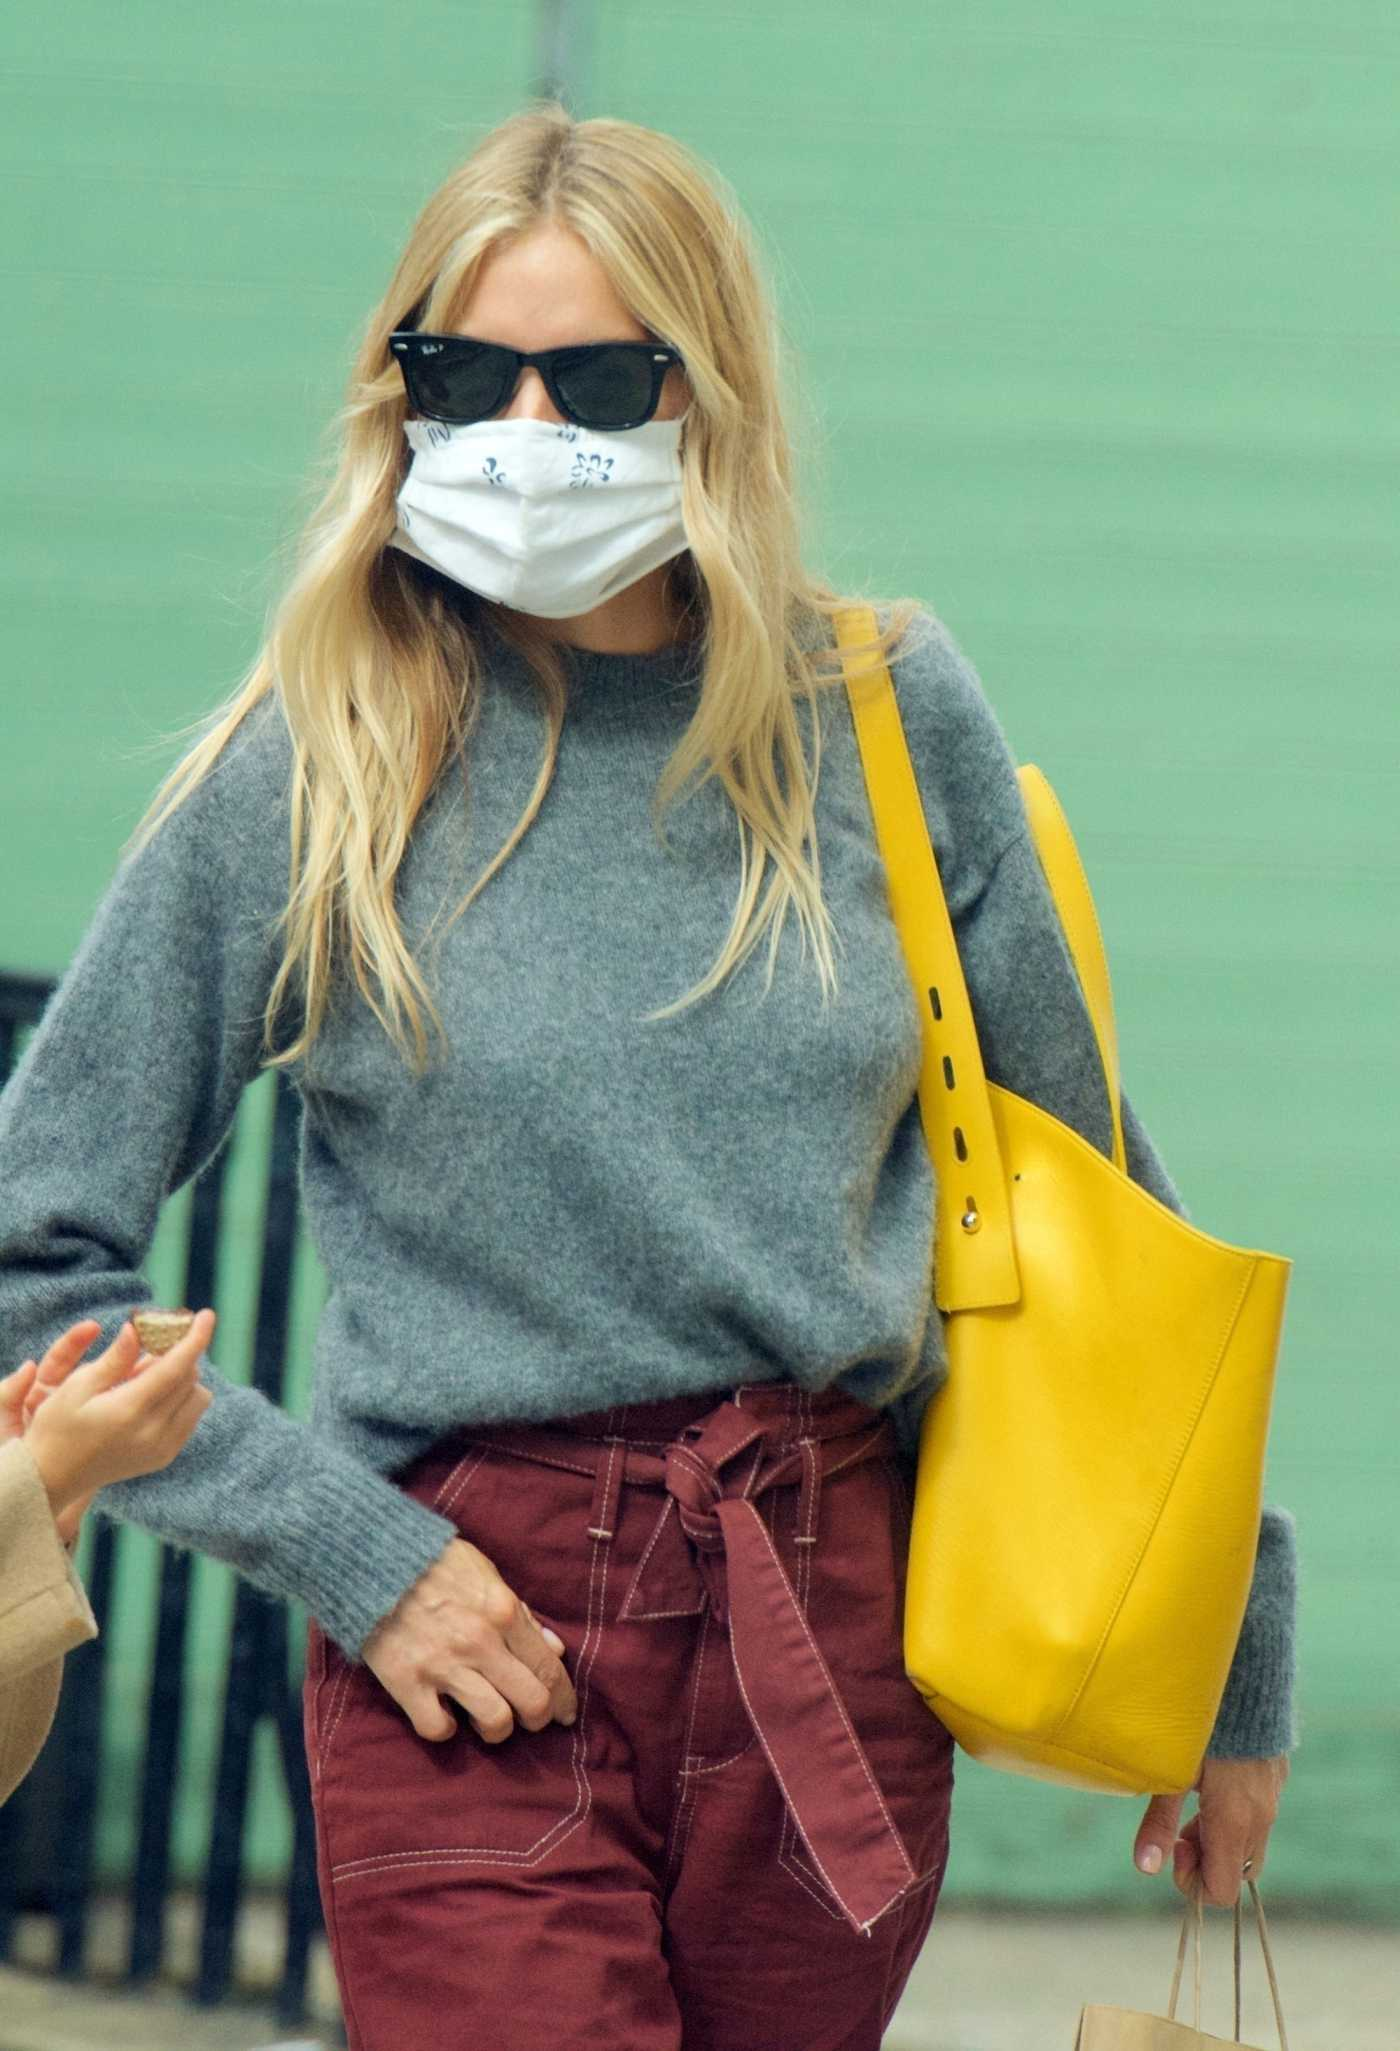 Sienna Miller in a Grey Sweater Has Lunch Out in London 09/08/2020